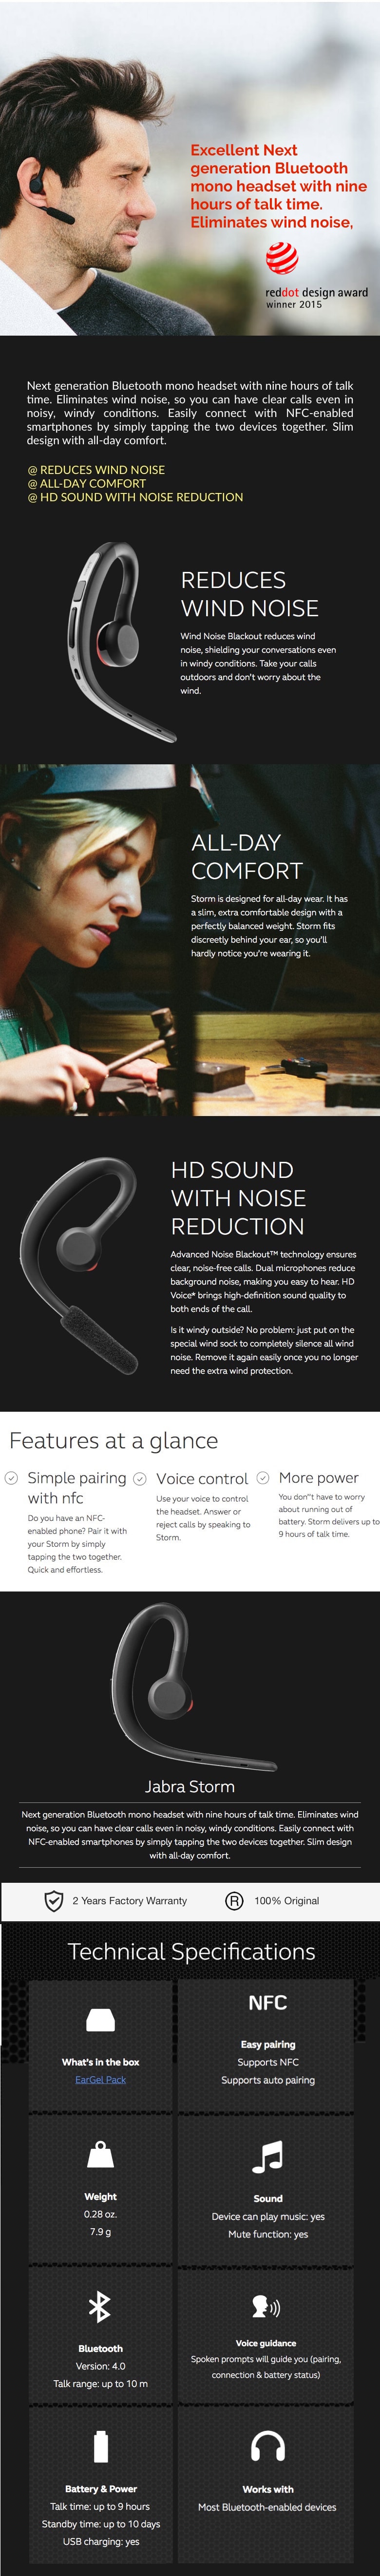 Jabra Storm Wireless Bluetooth Headset For Iphone Samsung Phone Dhause